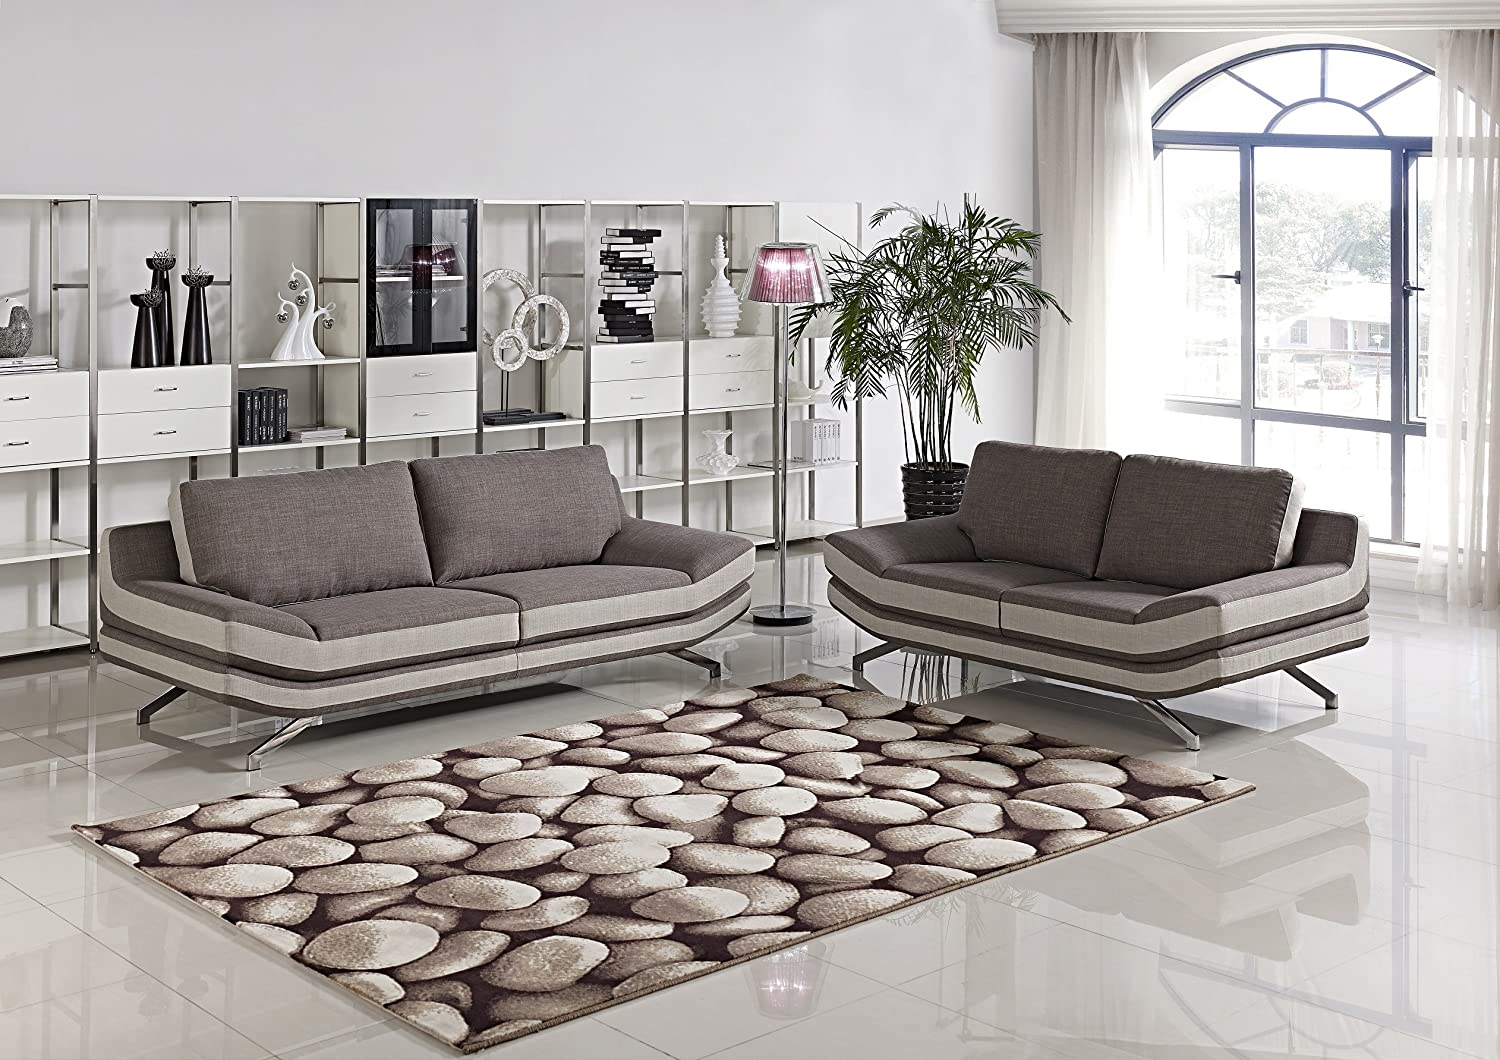 Cyna Cappuccino with Beige Linen Fabric 2-piece Sofa and Loveseat Set